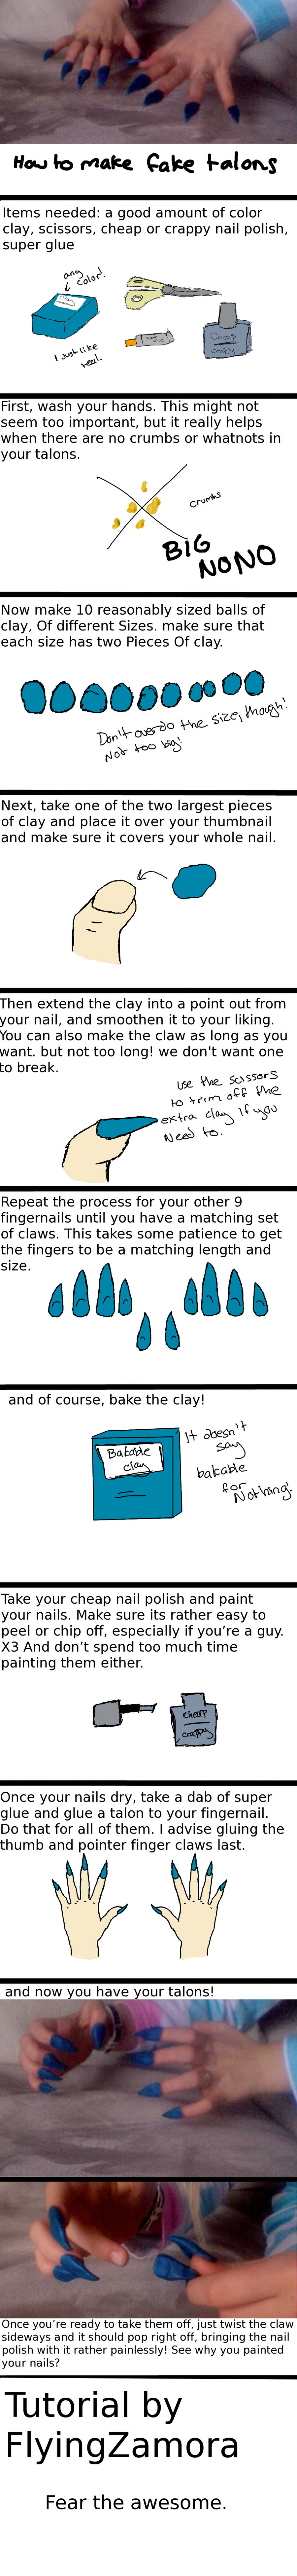 how to make fake talons